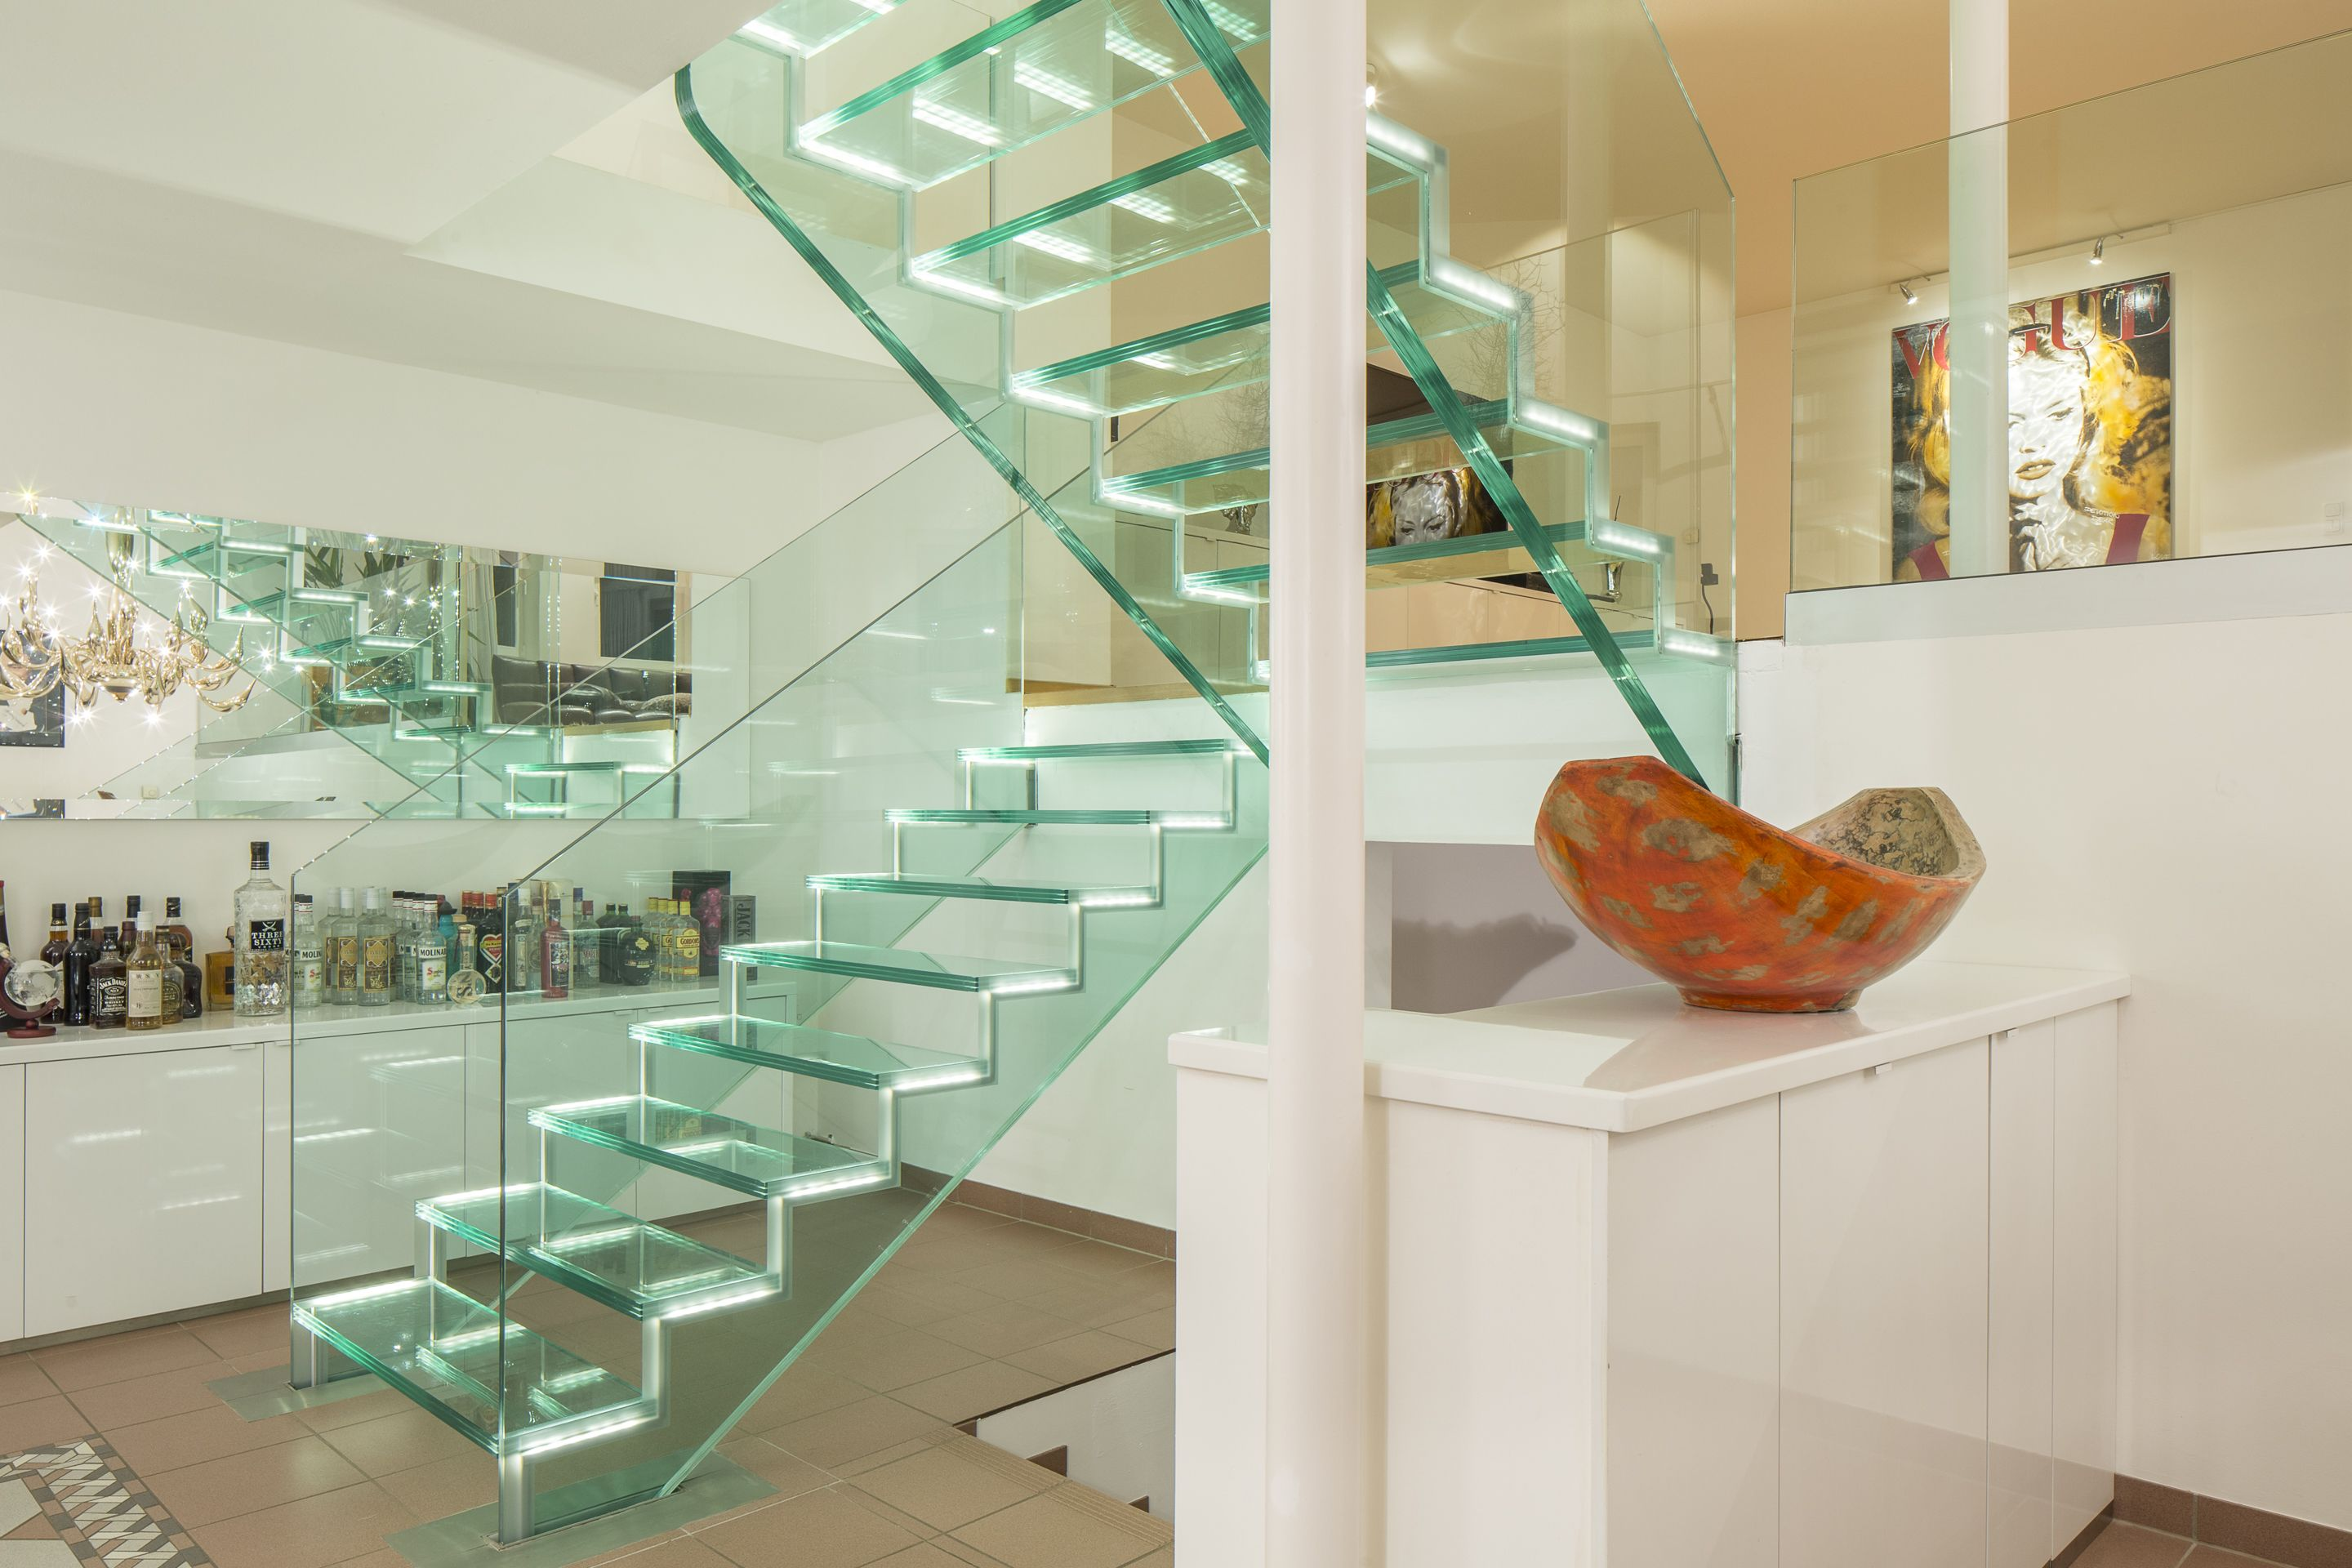 Stair 100% Glass, No Stainless Steel Hardware, Treads Light Up With LED,